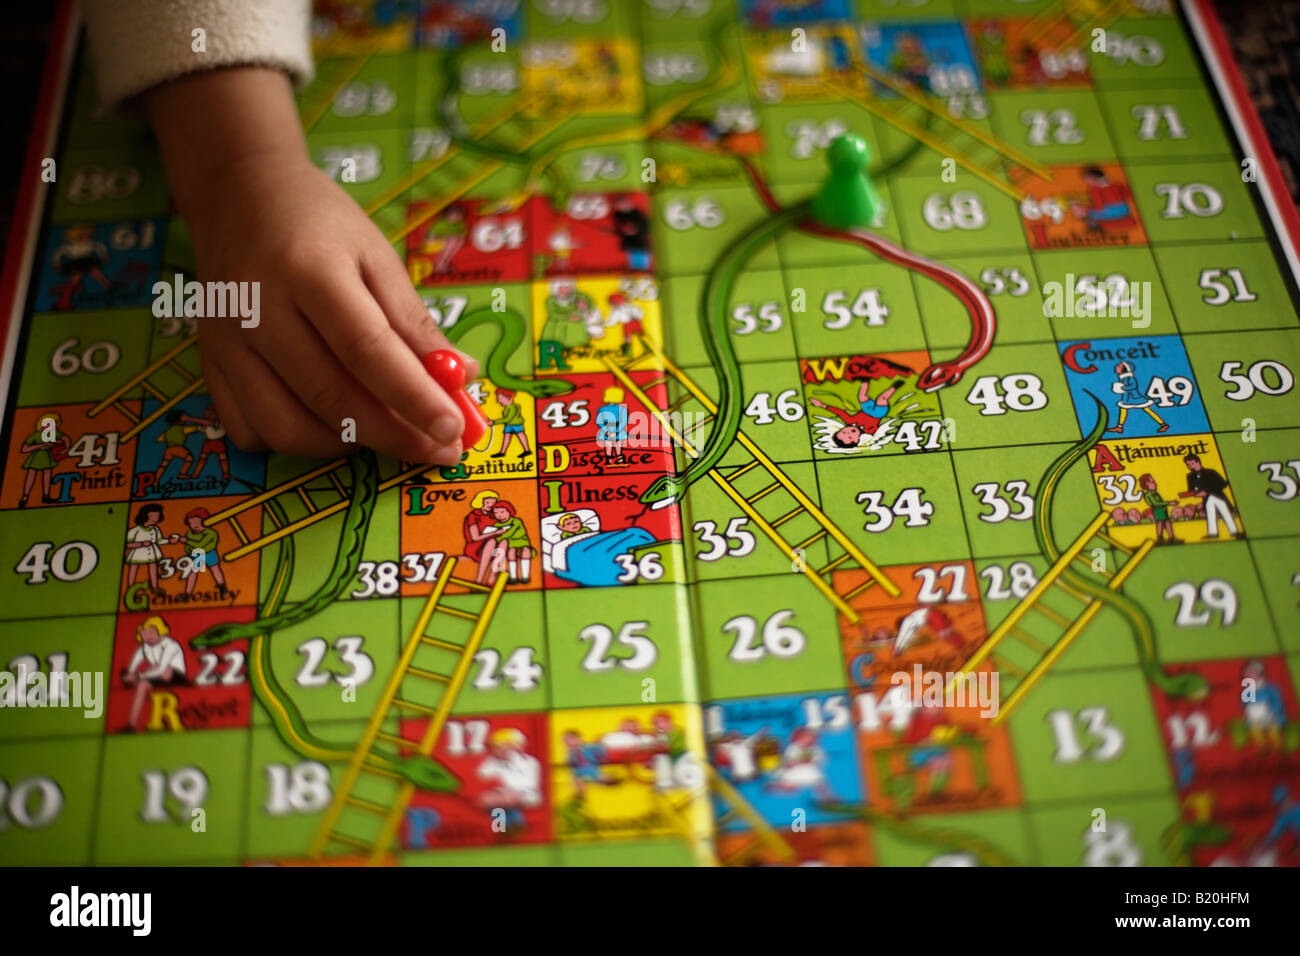 Children Play Game Of Snakes And Ladders Stock Photo Alamy